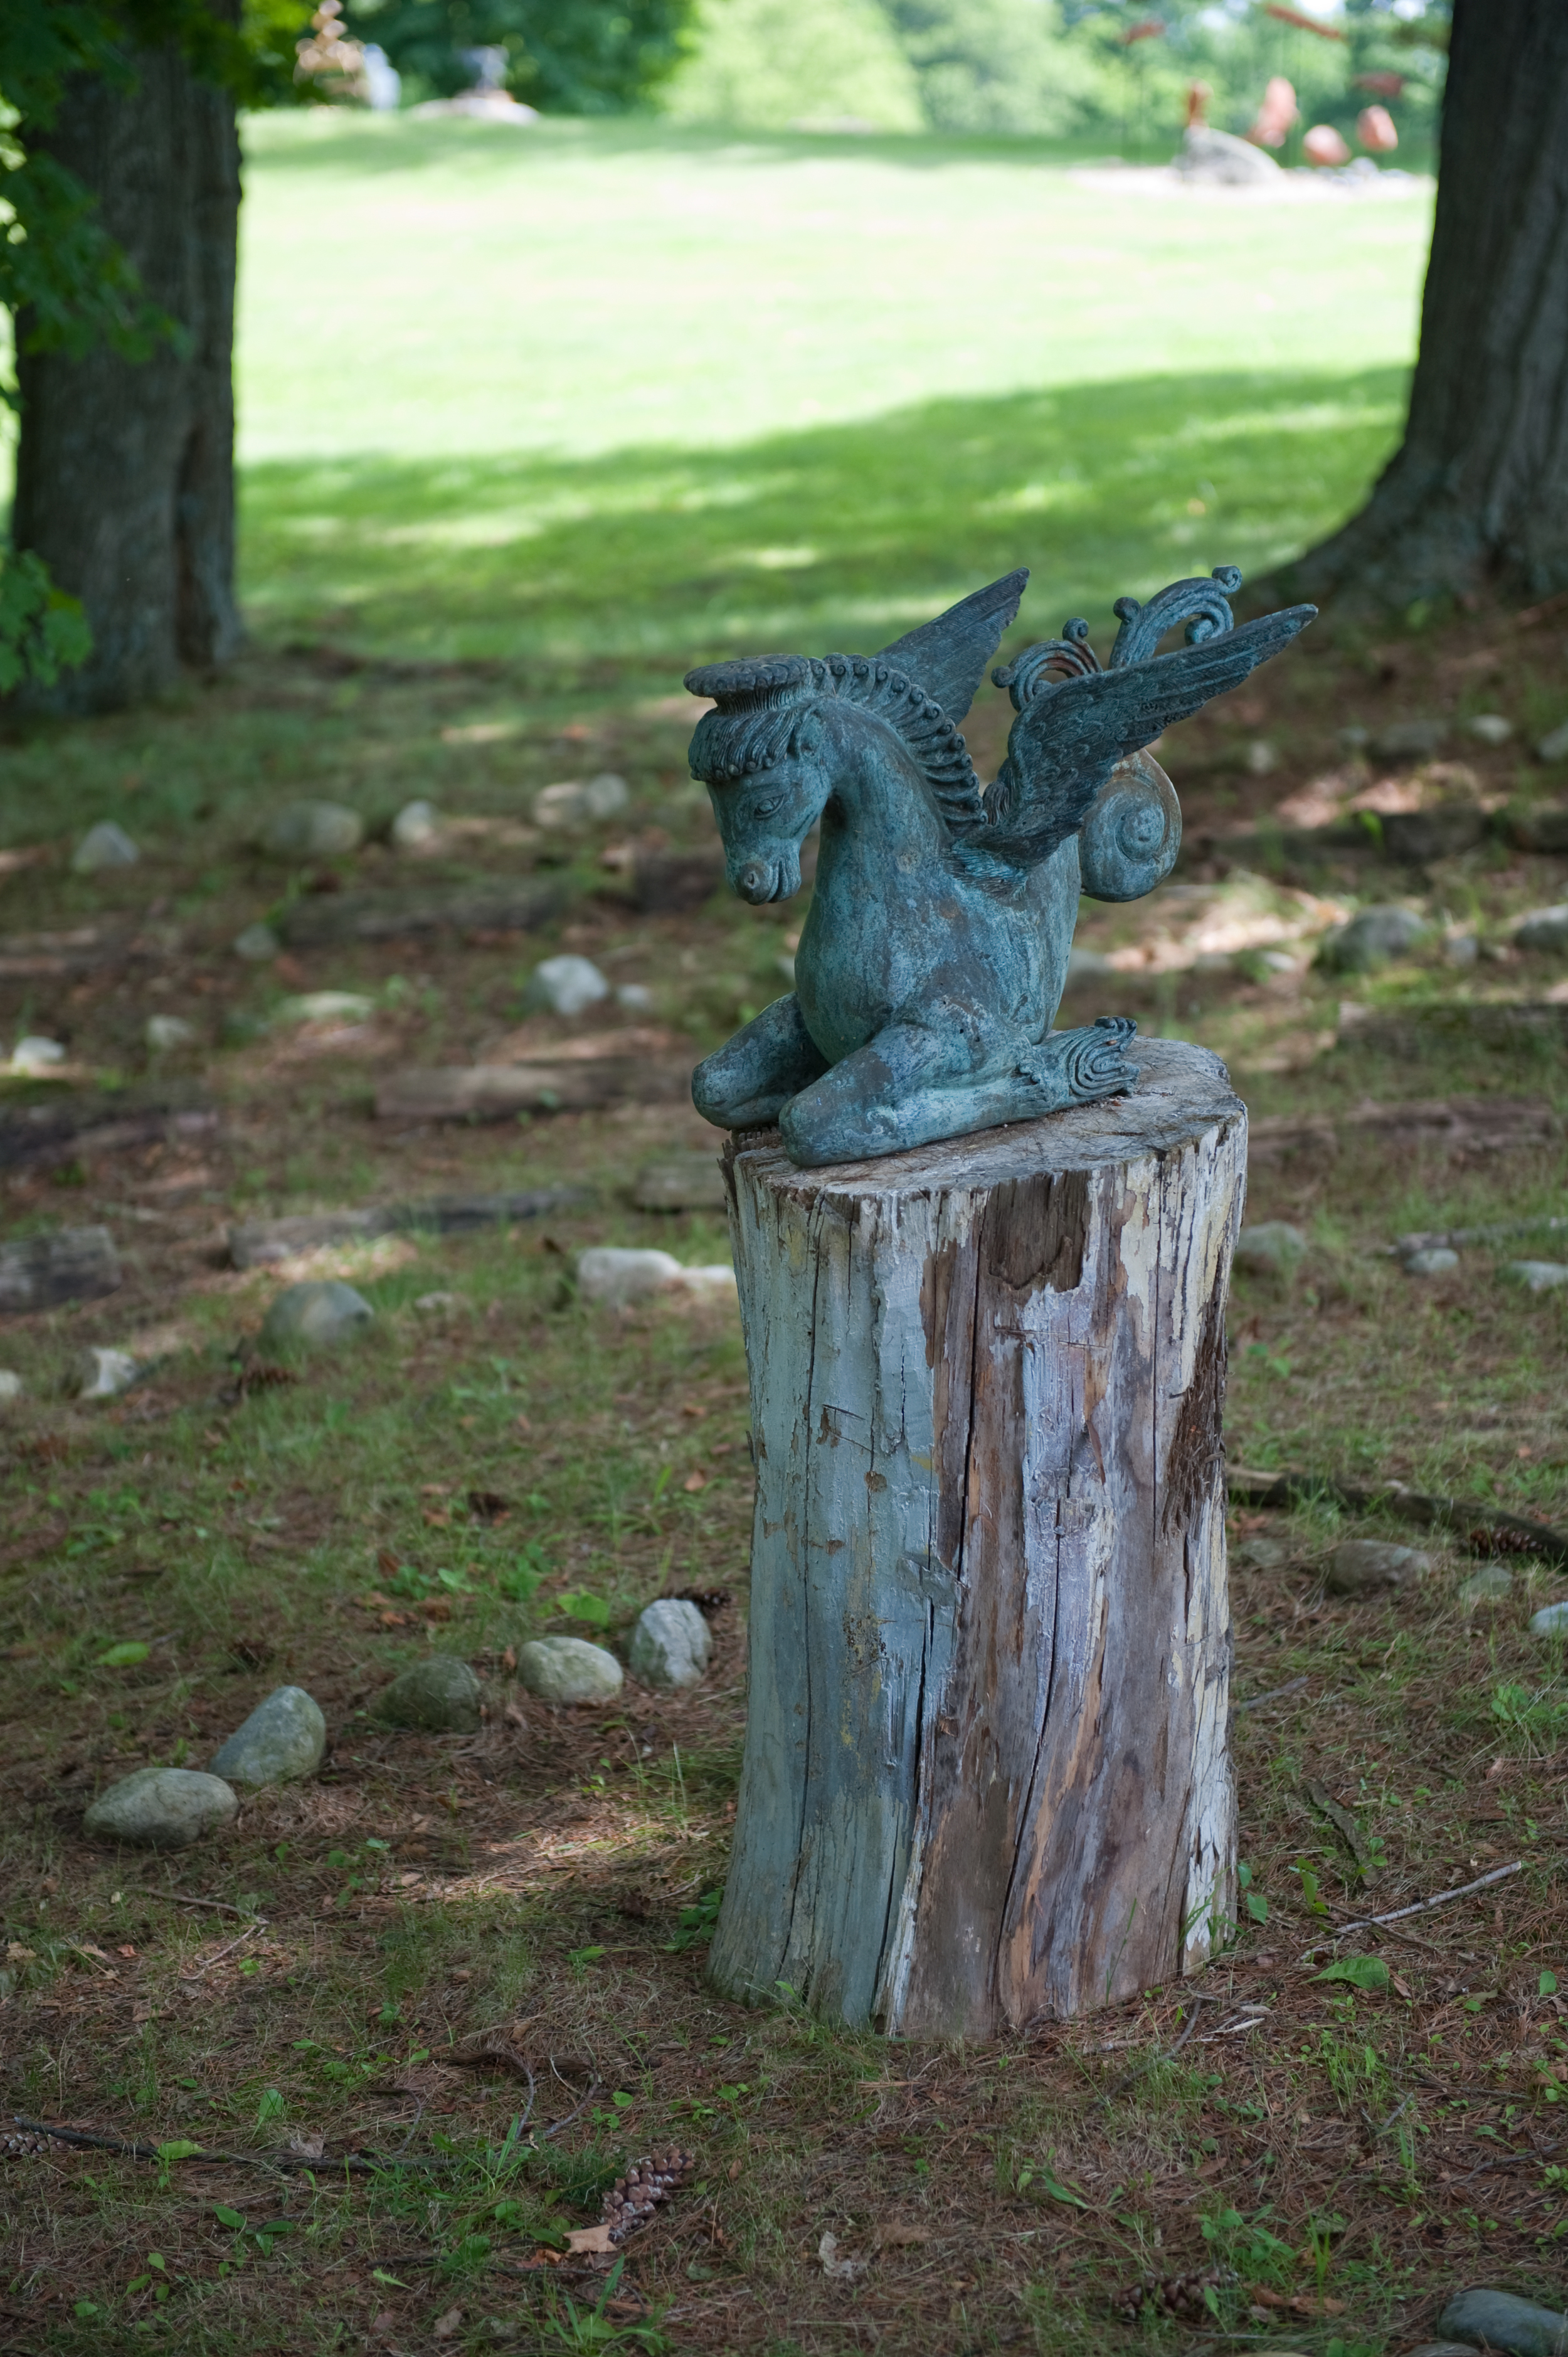 Compromise: Pegasus and the Labrynth